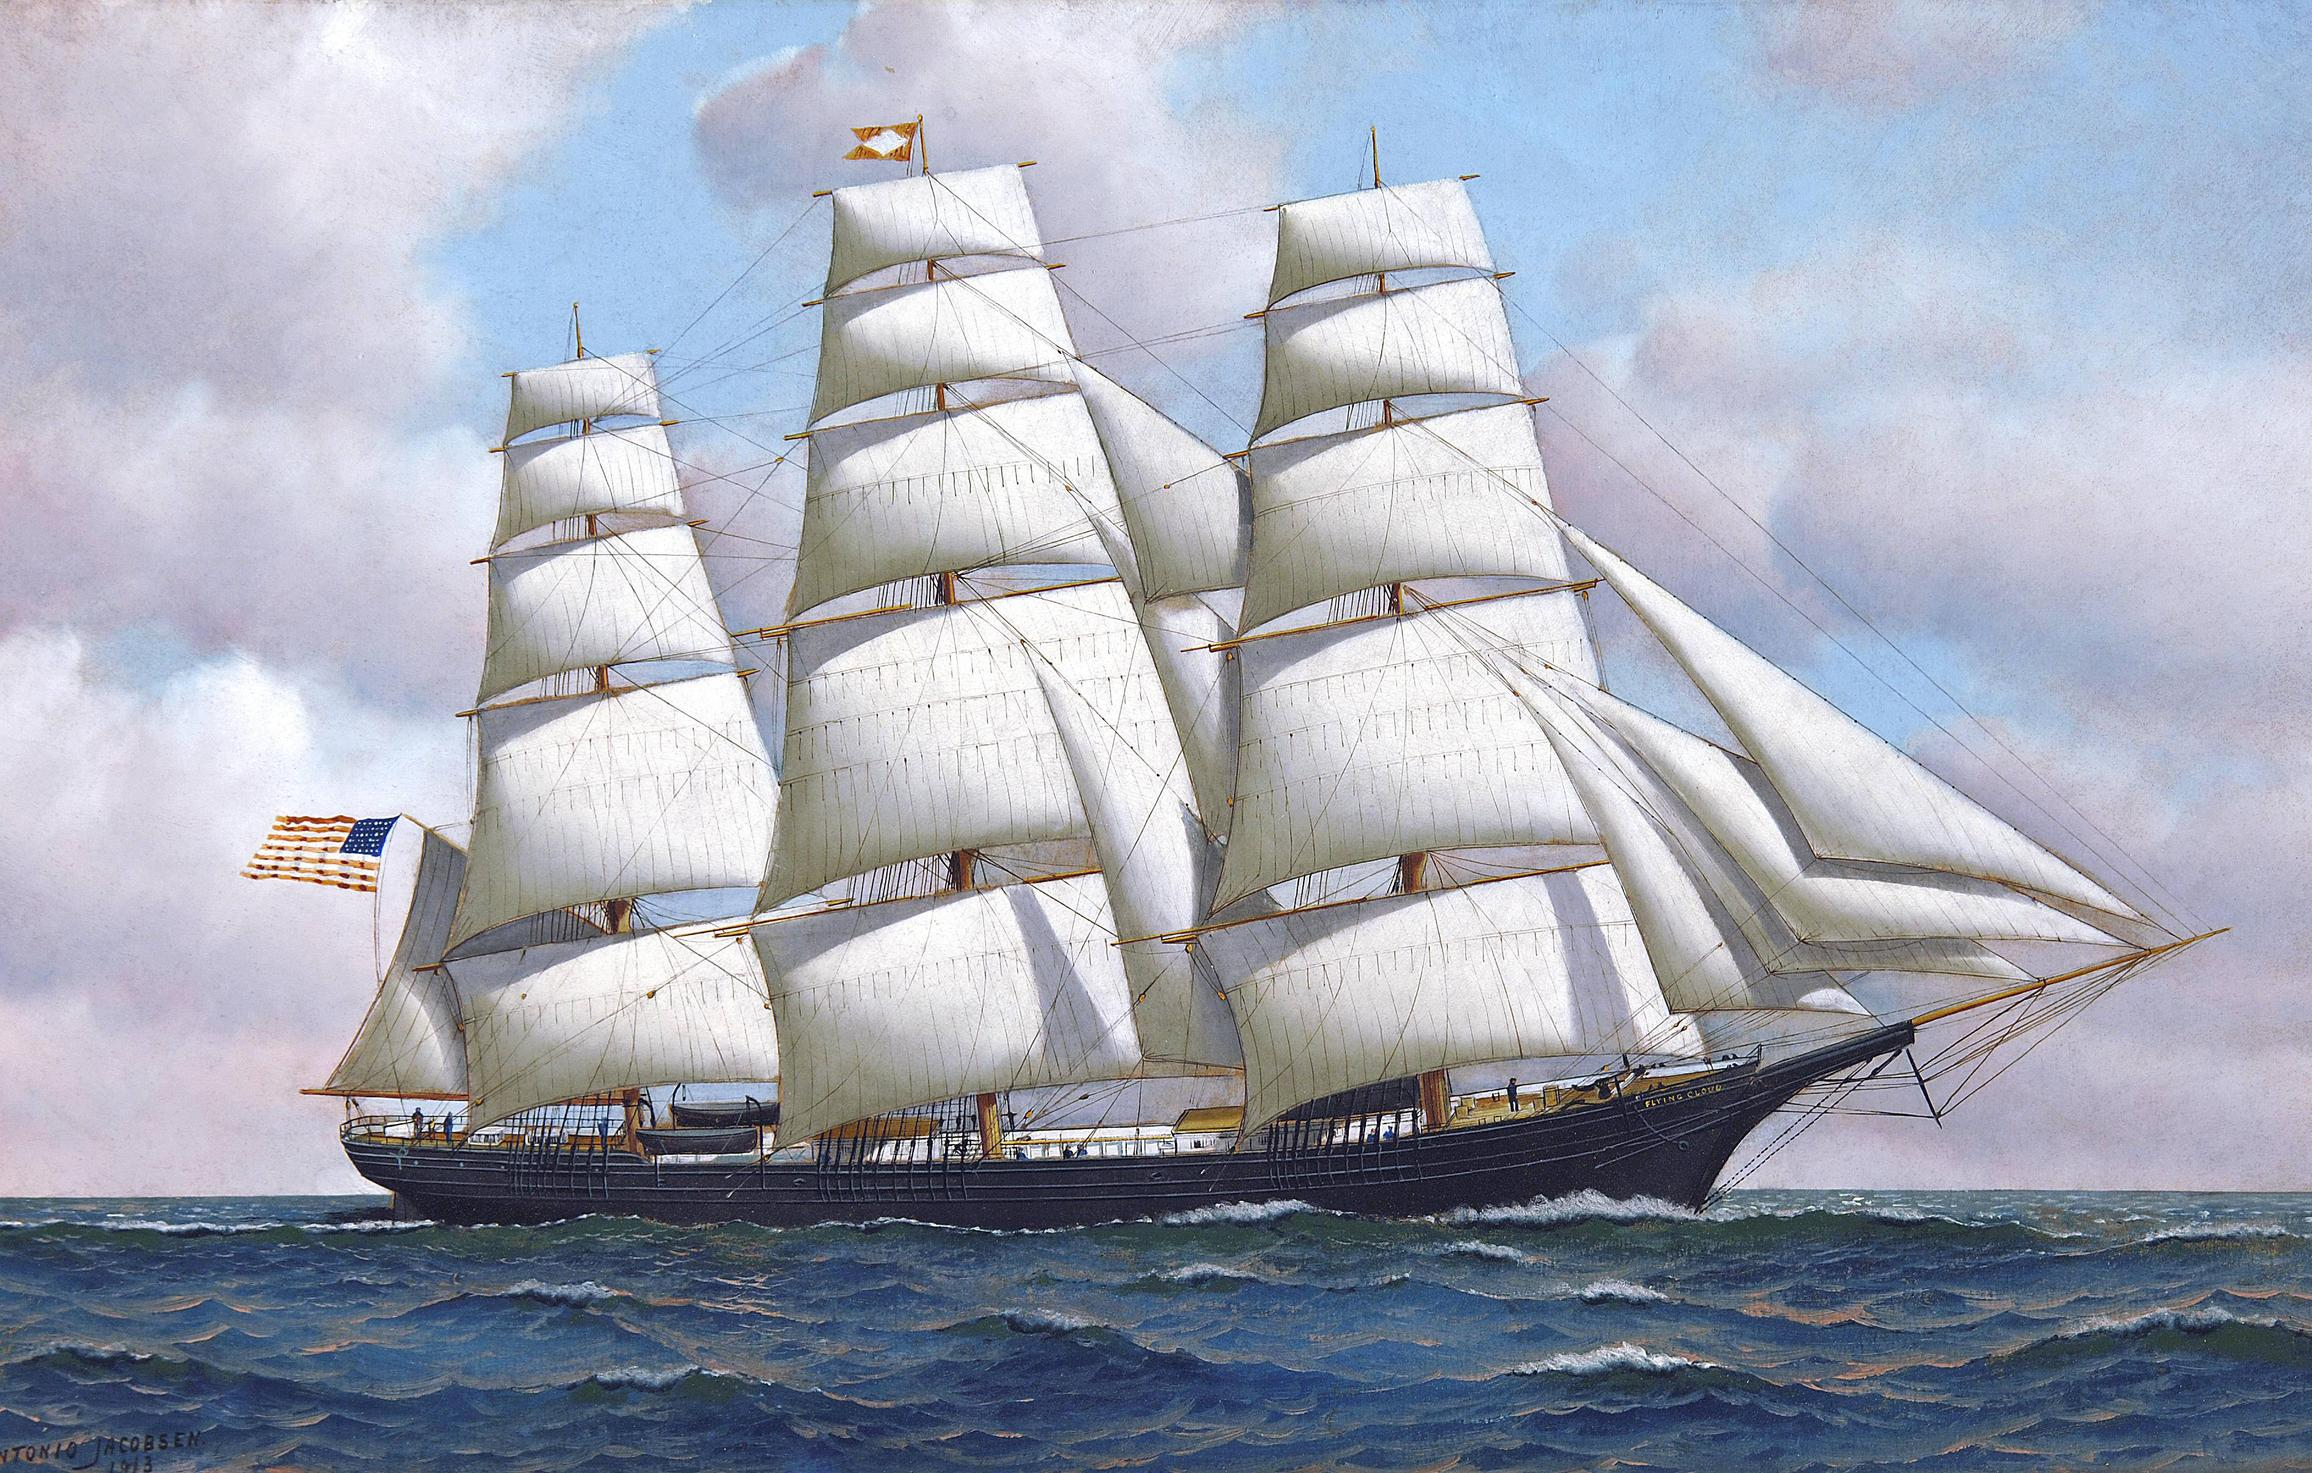 idioms - What's the sailing ship equivalent for